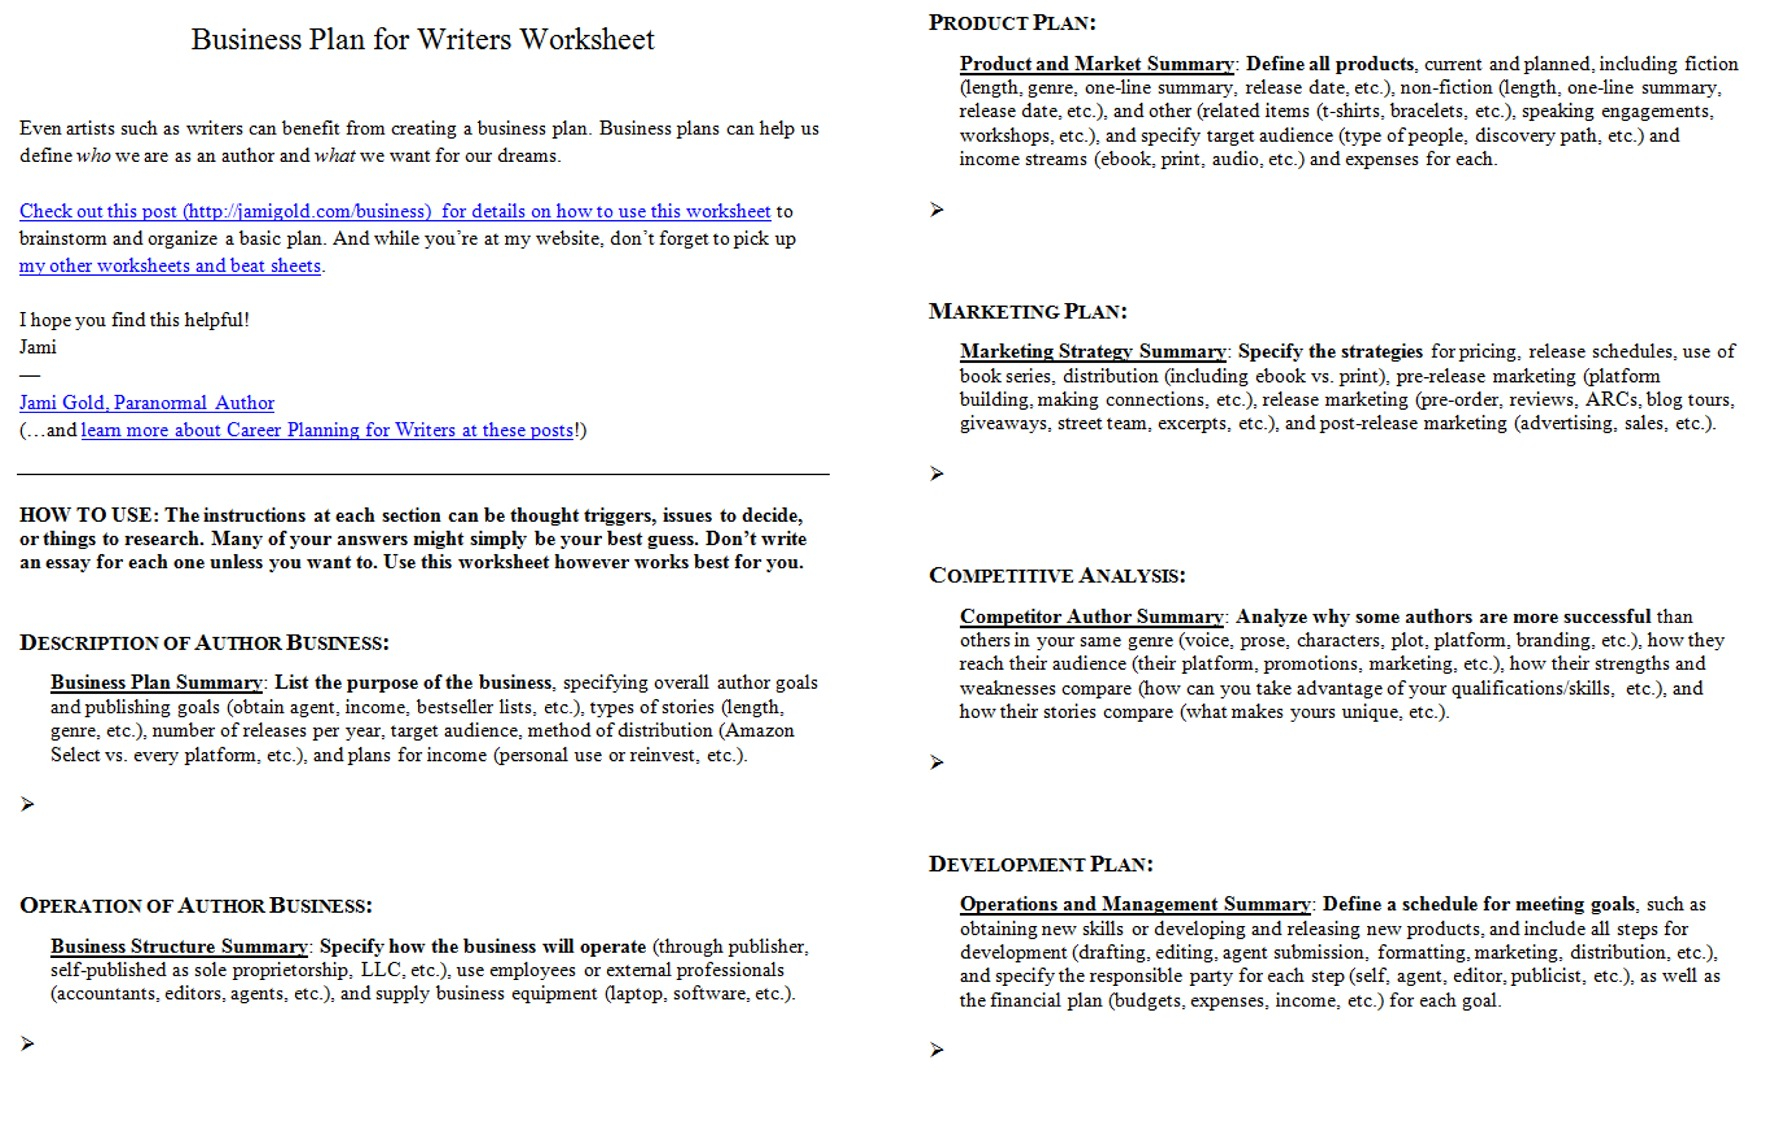 Weirdmailus  Prepossessing Worksheets For Writers  Jami Gold Paranormal Author With Heavenly Screen Shot Of Both Pages Of The Business Plan For Writers Worksheet With Cool Long And Short A Sounds Worksheets Also Measures Worksheets In Addition Maths Quiz Worksheets And Follow The Instructions Worksheet As Well As Grid References Worksheet Additionally Sh Blends Worksheets From Jamigoldcom With Weirdmailus  Heavenly Worksheets For Writers  Jami Gold Paranormal Author With Cool Screen Shot Of Both Pages Of The Business Plan For Writers Worksheet And Prepossessing Long And Short A Sounds Worksheets Also Measures Worksheets In Addition Maths Quiz Worksheets From Jamigoldcom